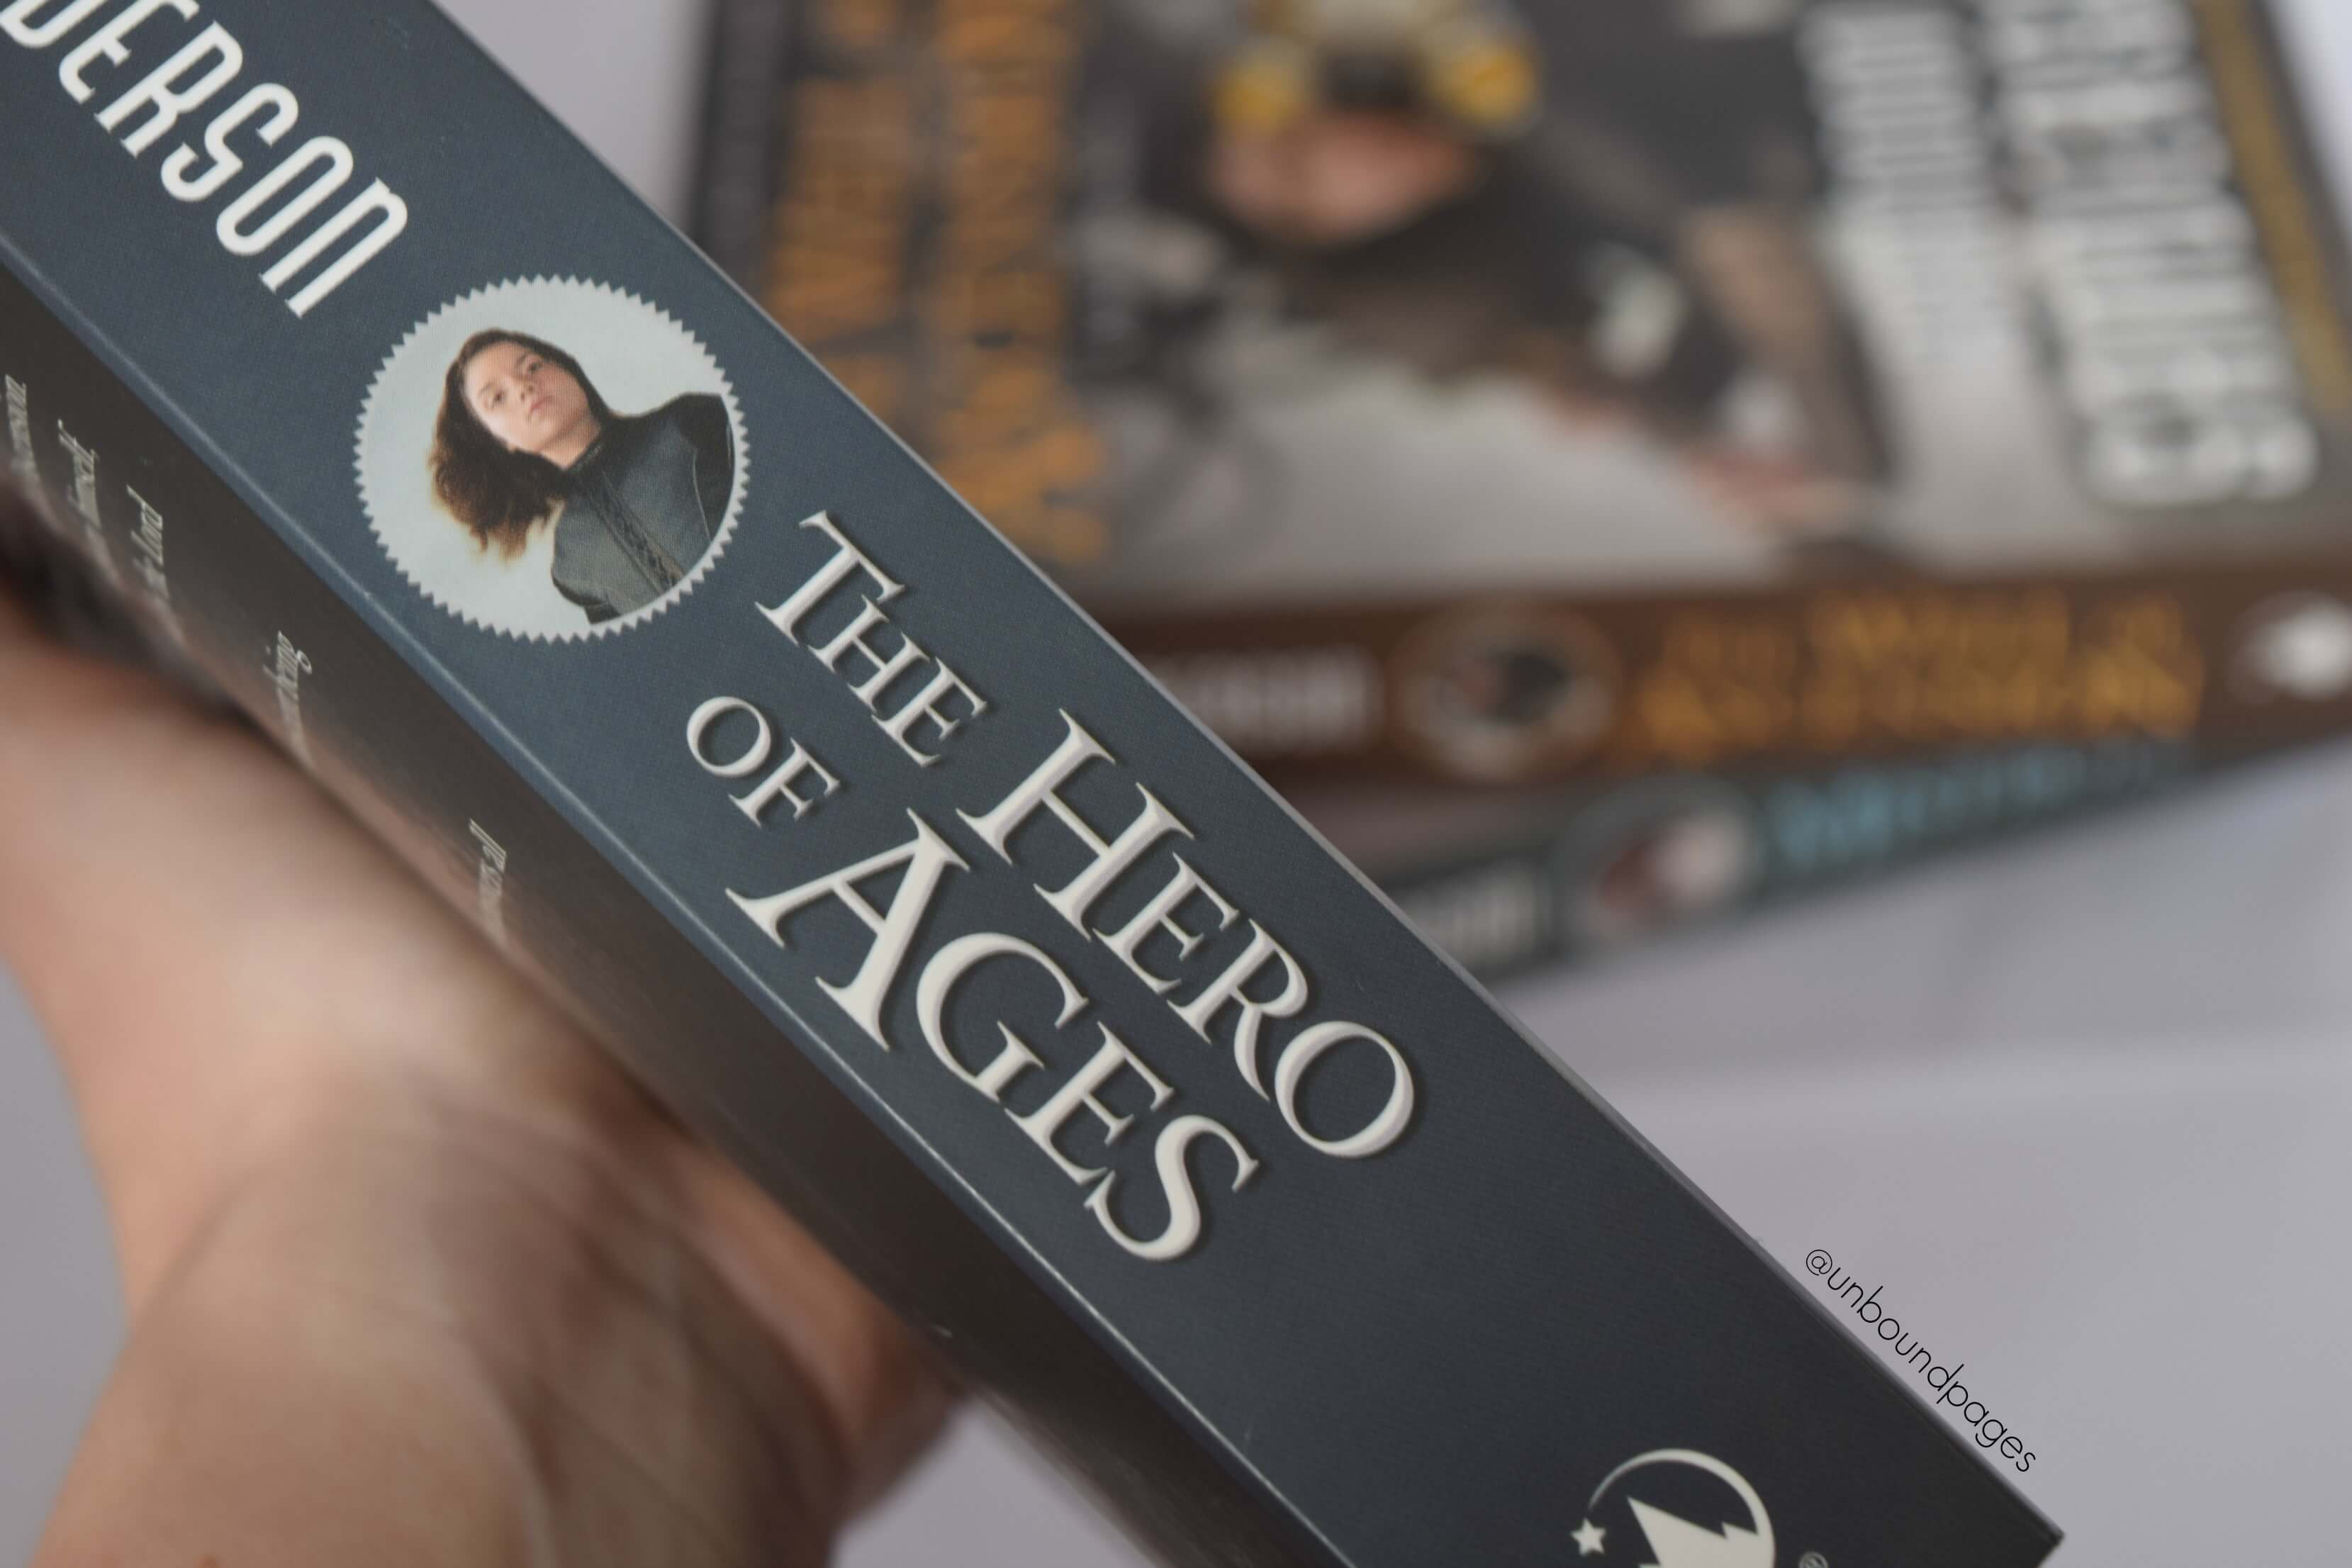 Hero of Ages was the perfect finale to the Mistborn trilogy by Brandon Sanderson. This fantasy series sends a resounding message of hope and taught me to never give up. Fantasy lovers should be reading this! - unboundpages.com